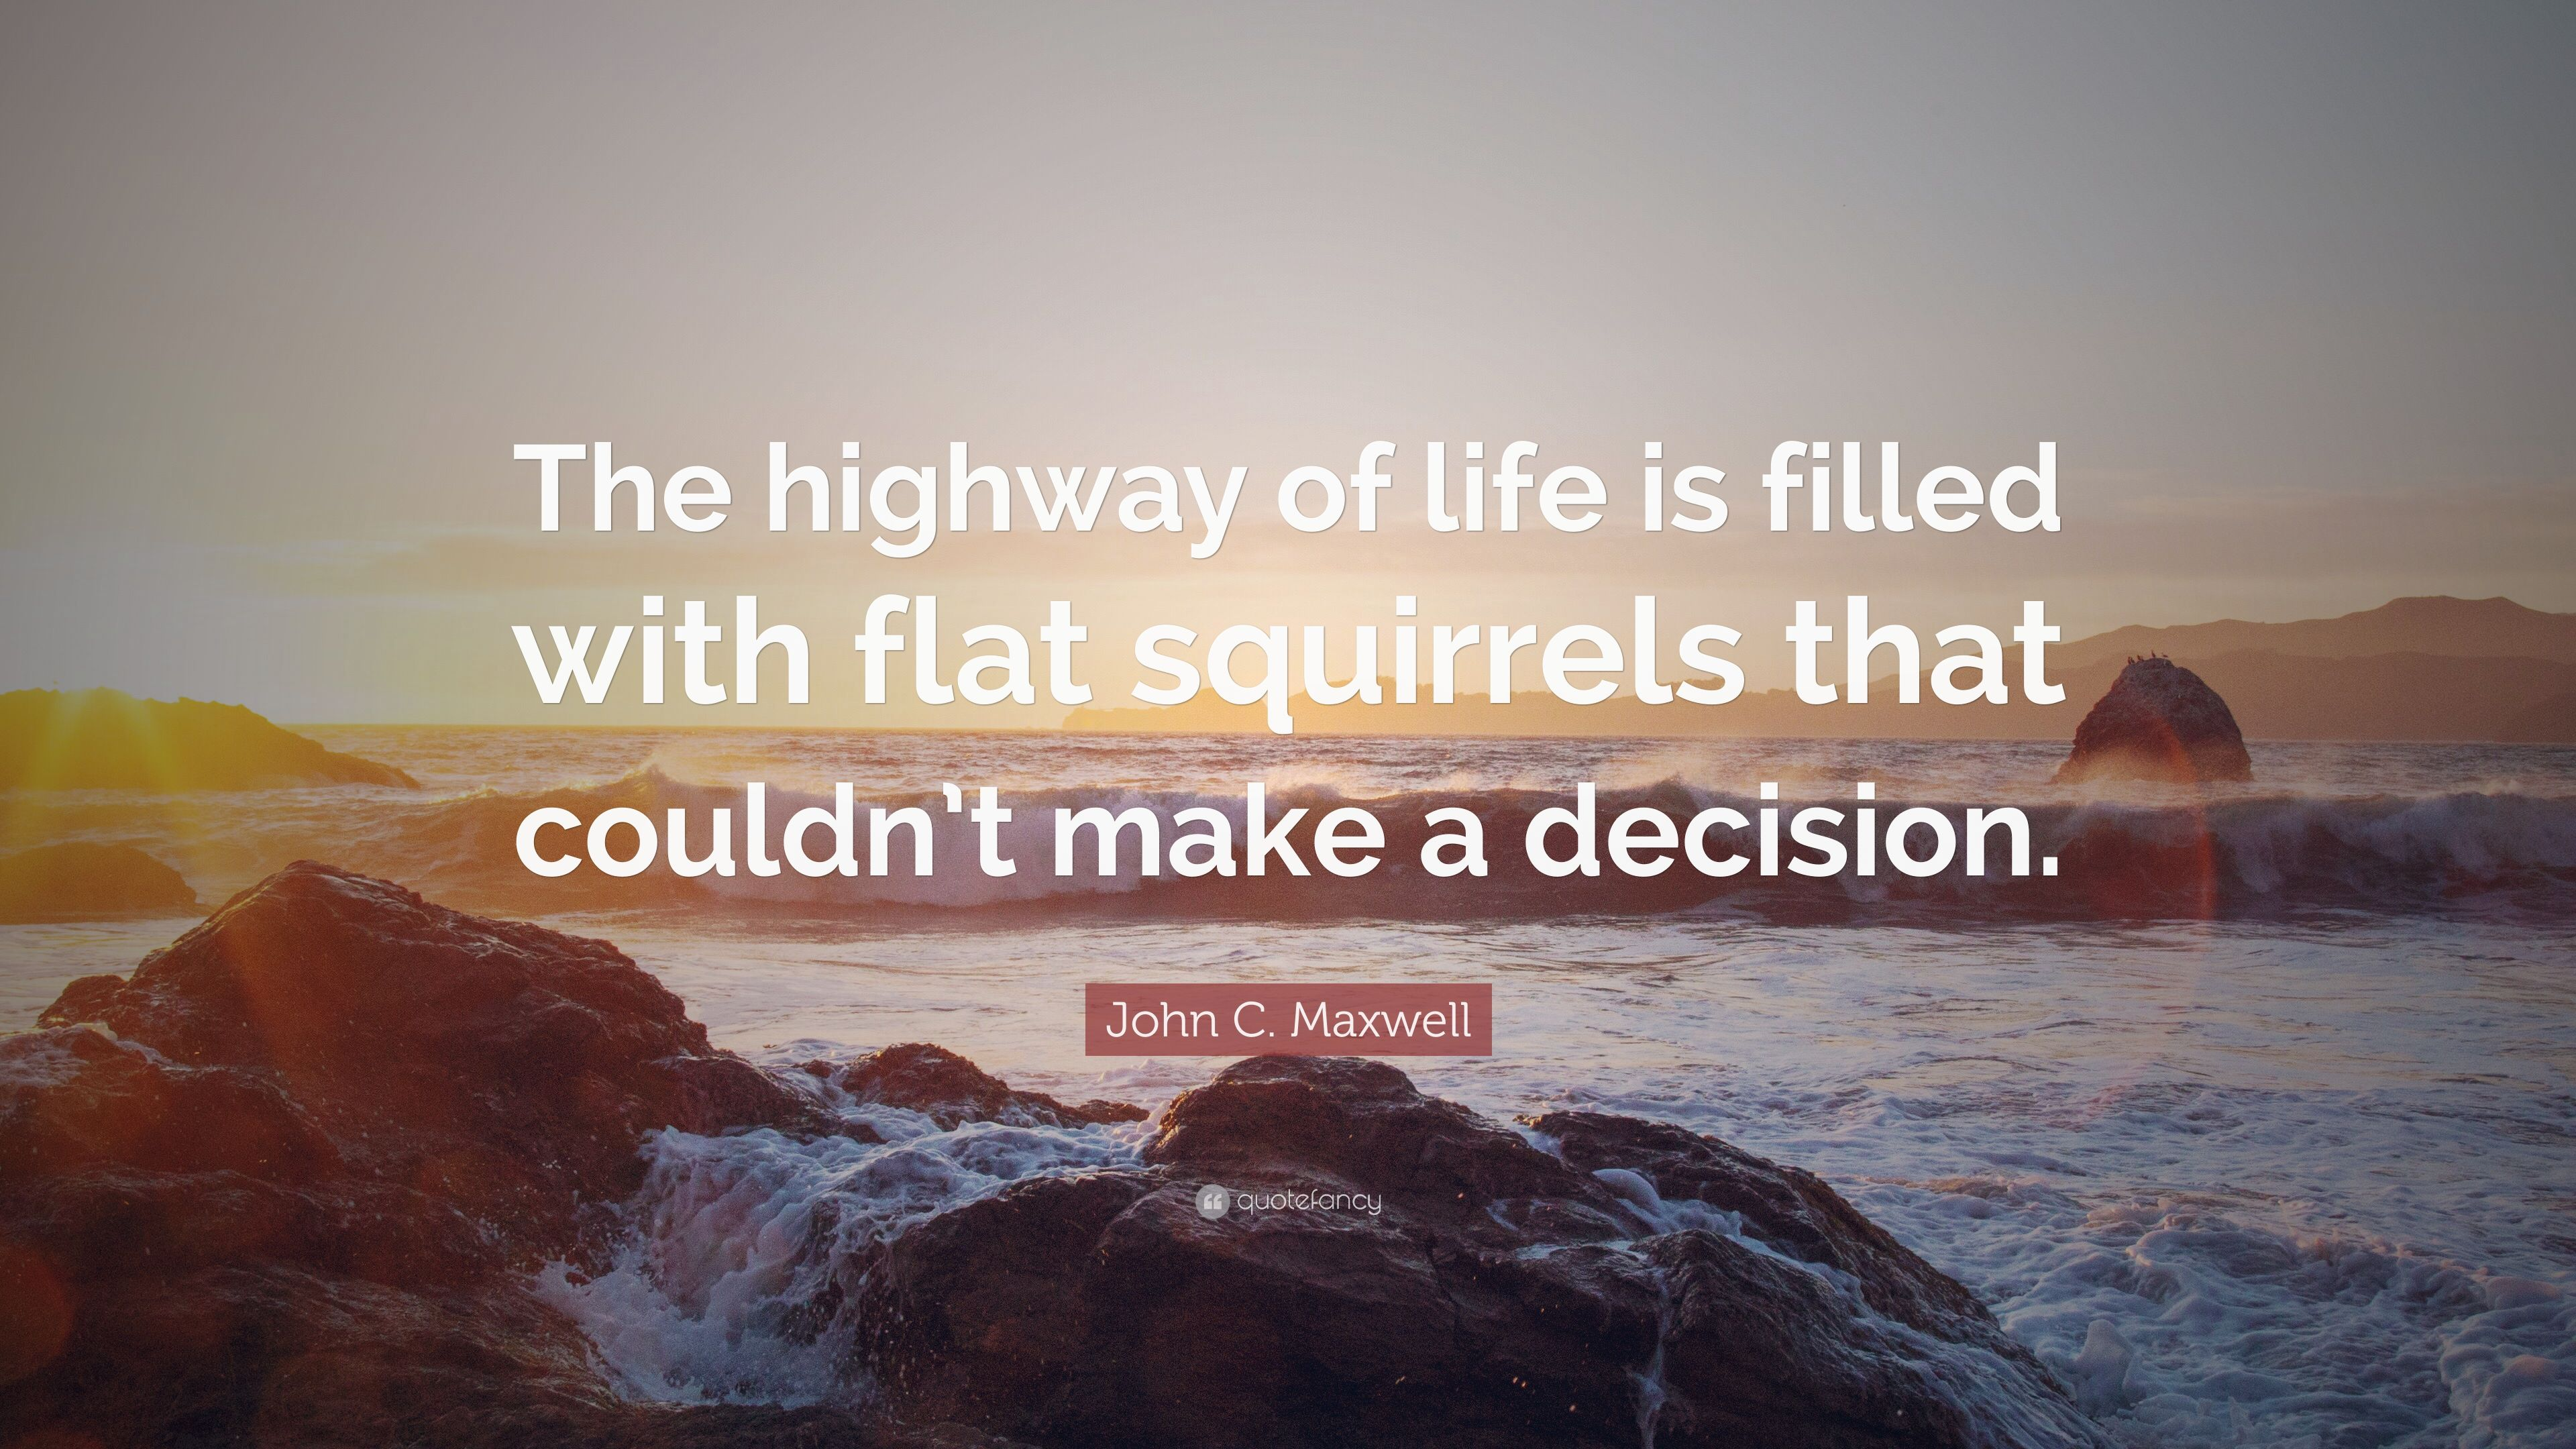 John C Maxwell Quote The Highway Of Life Is Filled With Flat